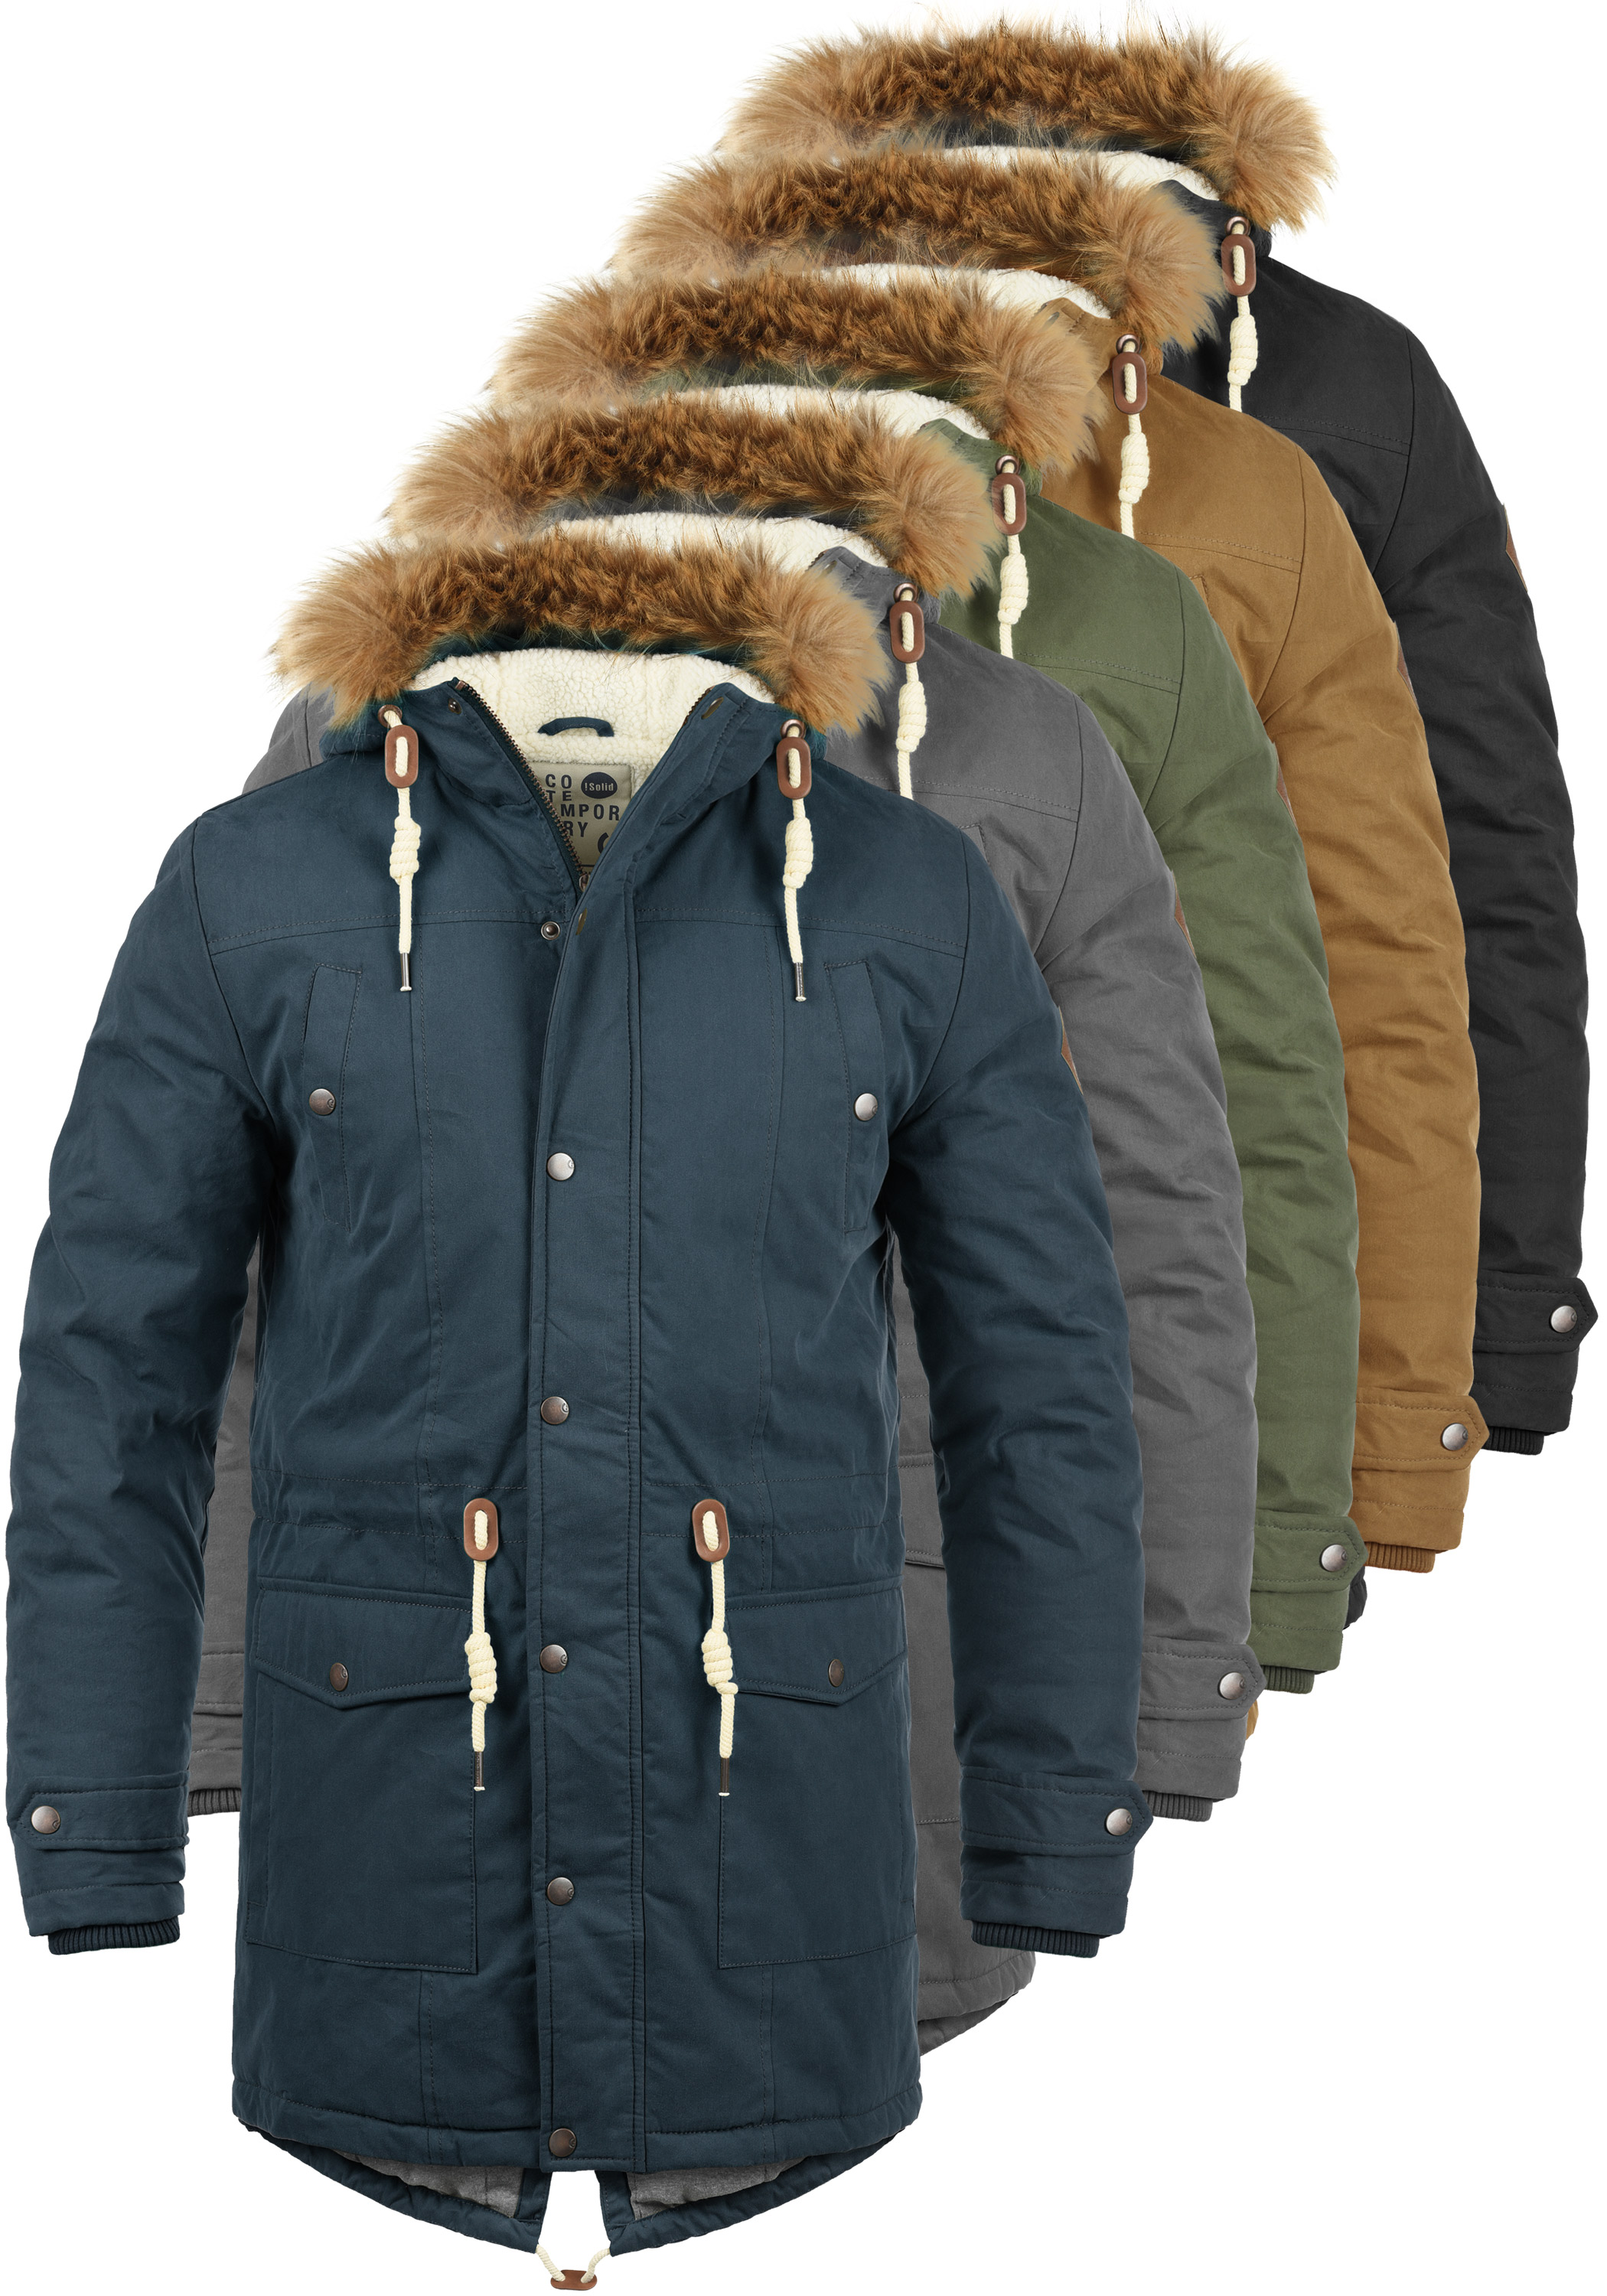 SOLID Dry Parka